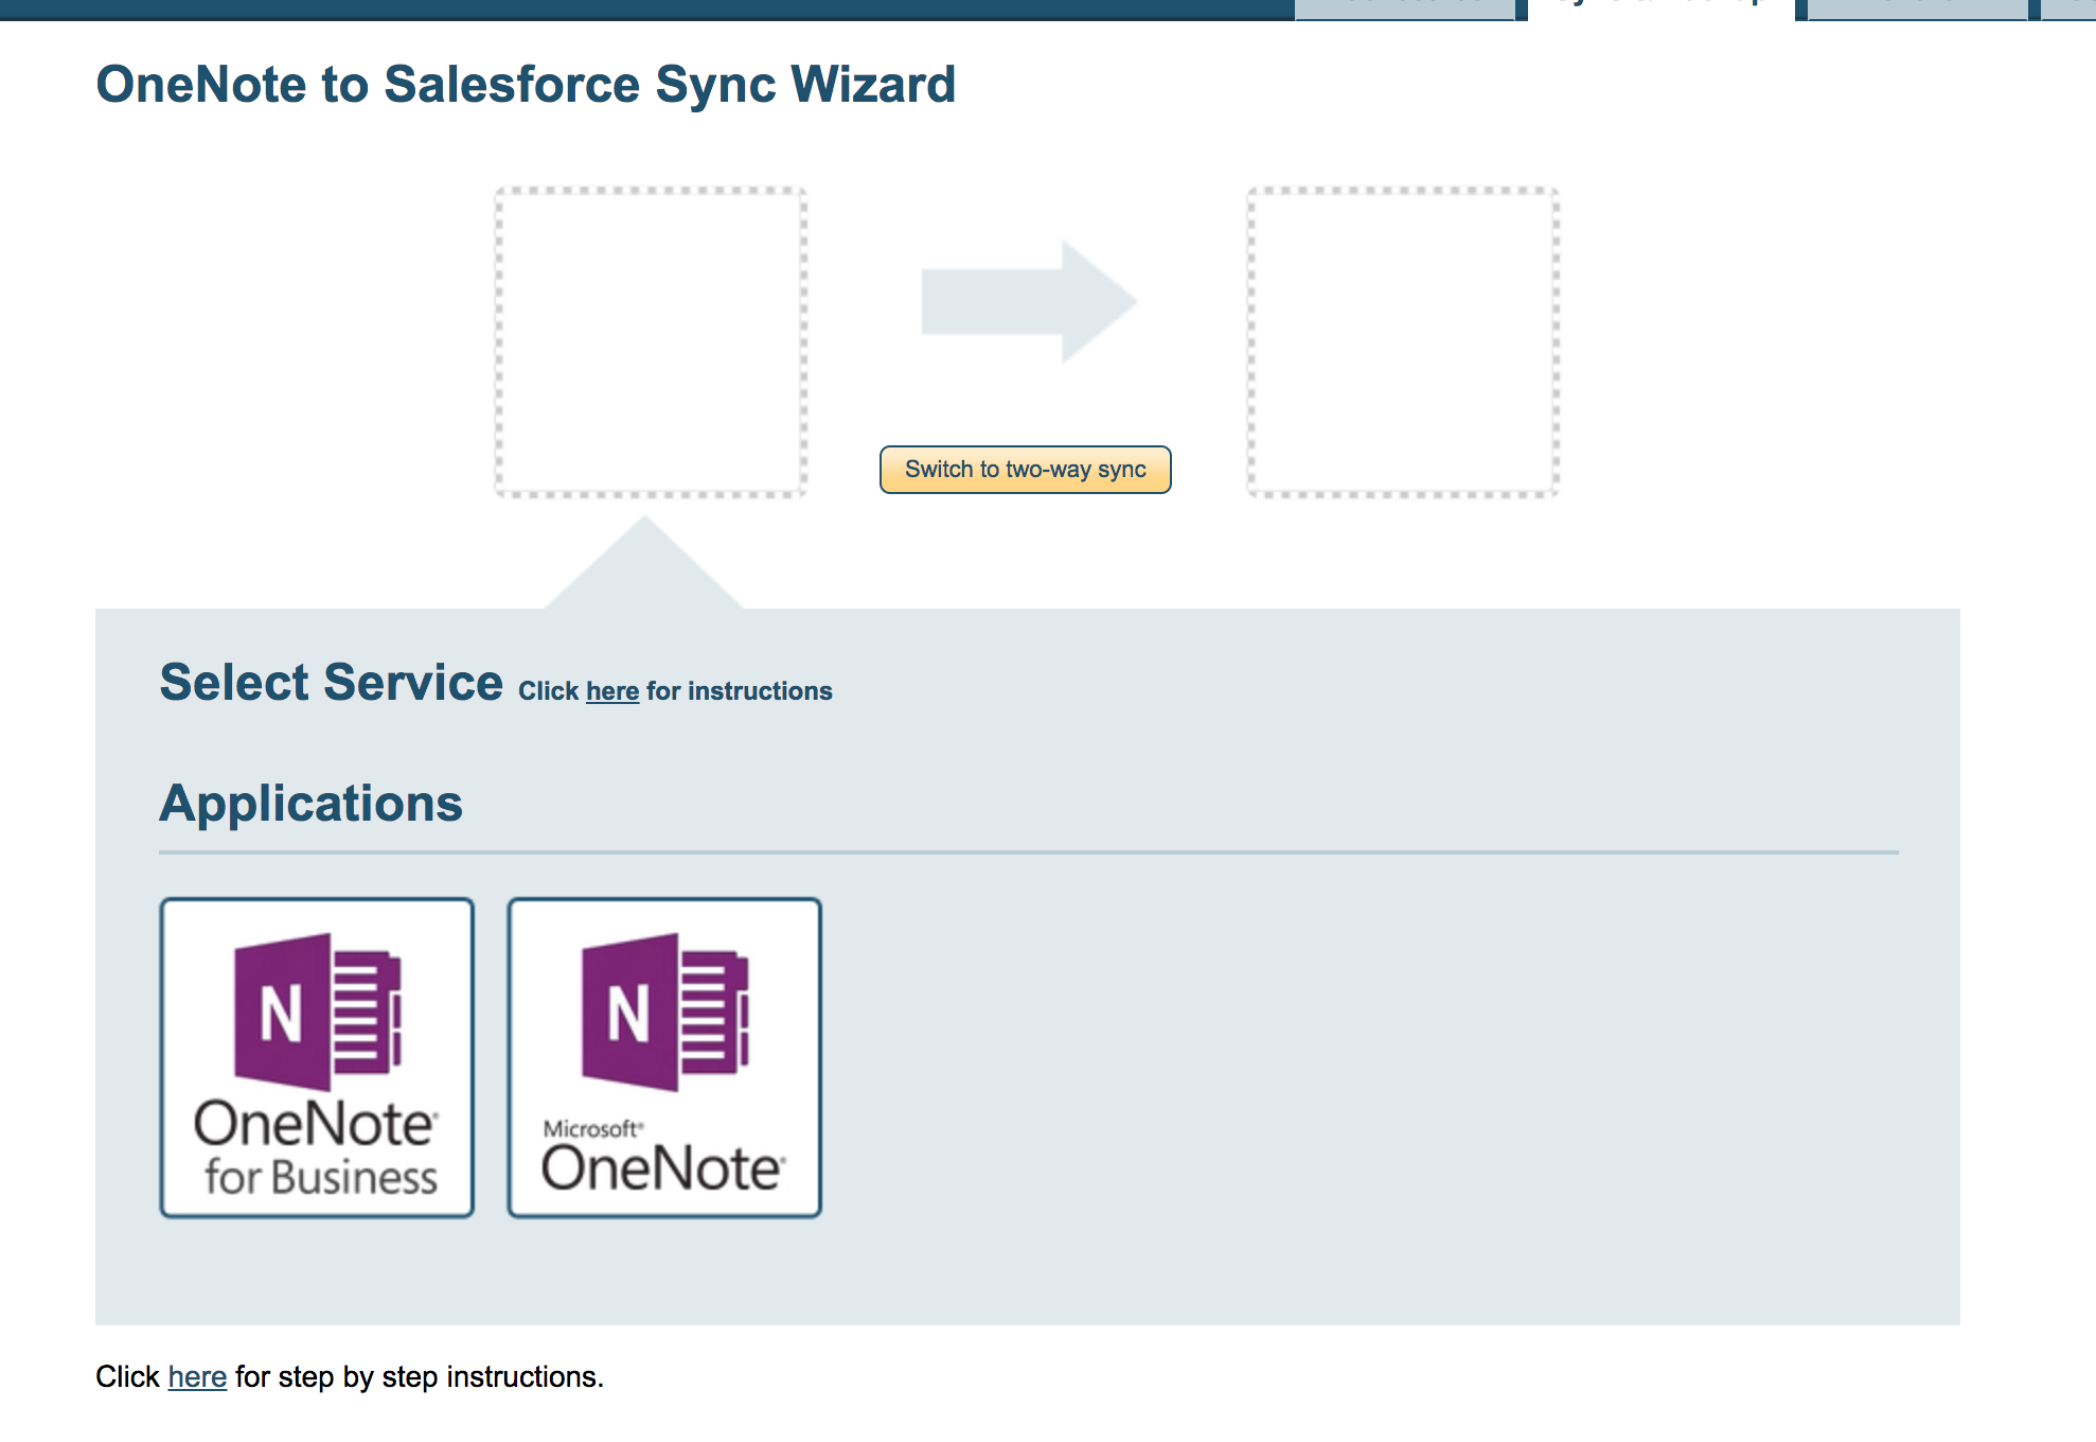 How to integrate OneNote with Salesforce (single user